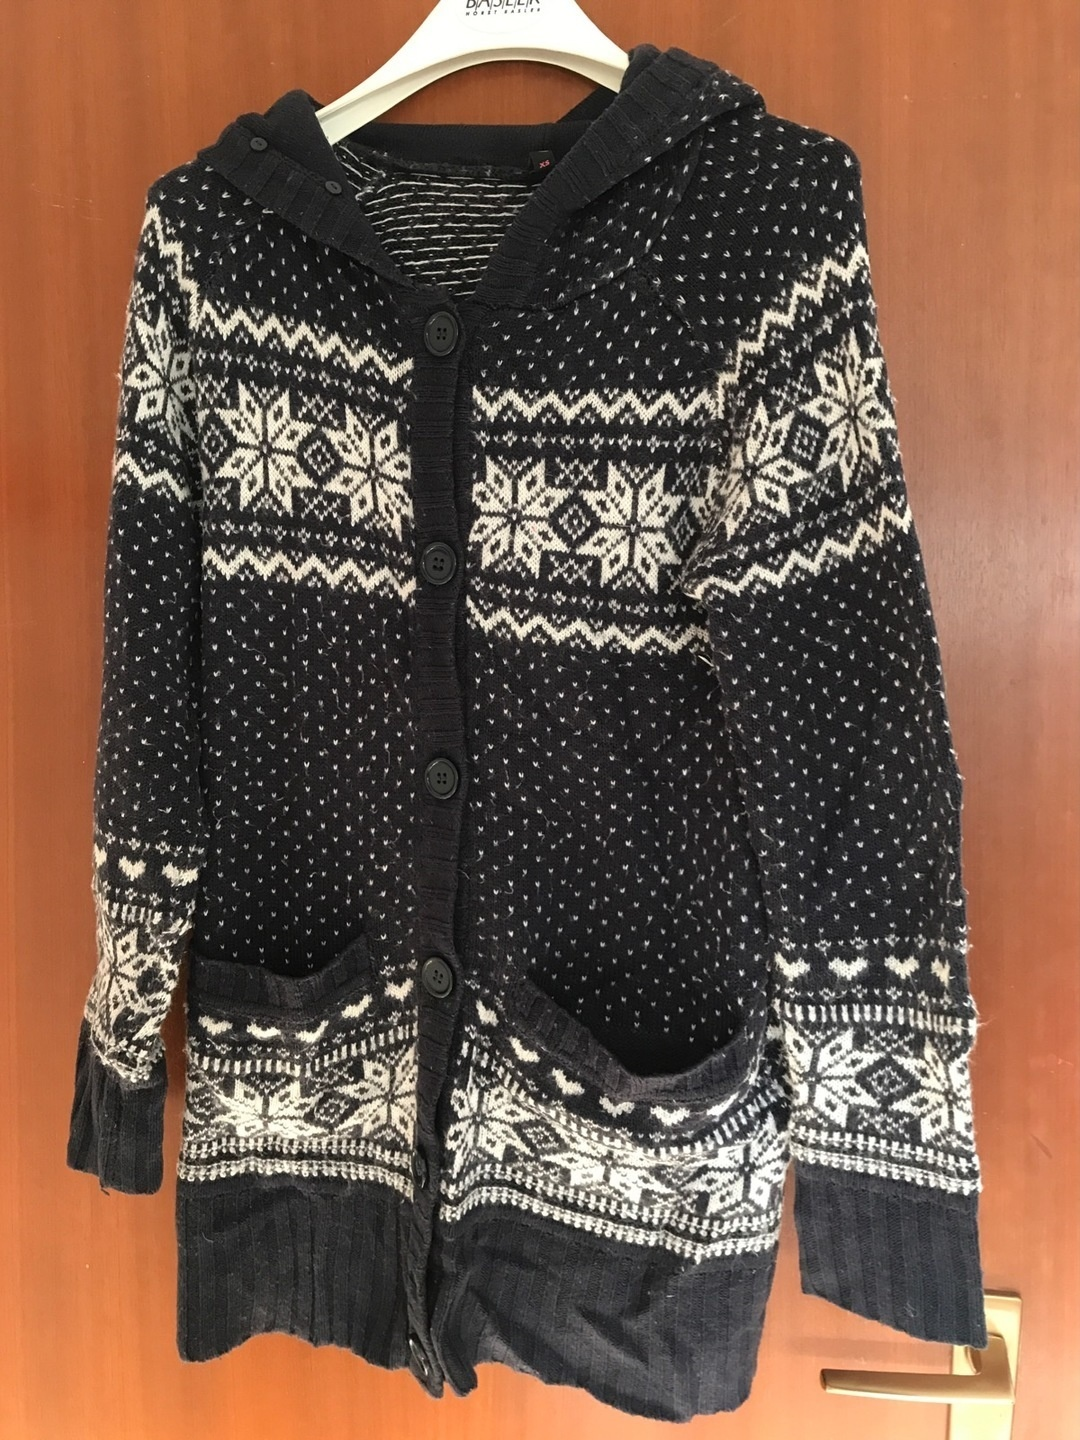 Women's jumpers & cardigans - ANN CHRISTINE photo 1